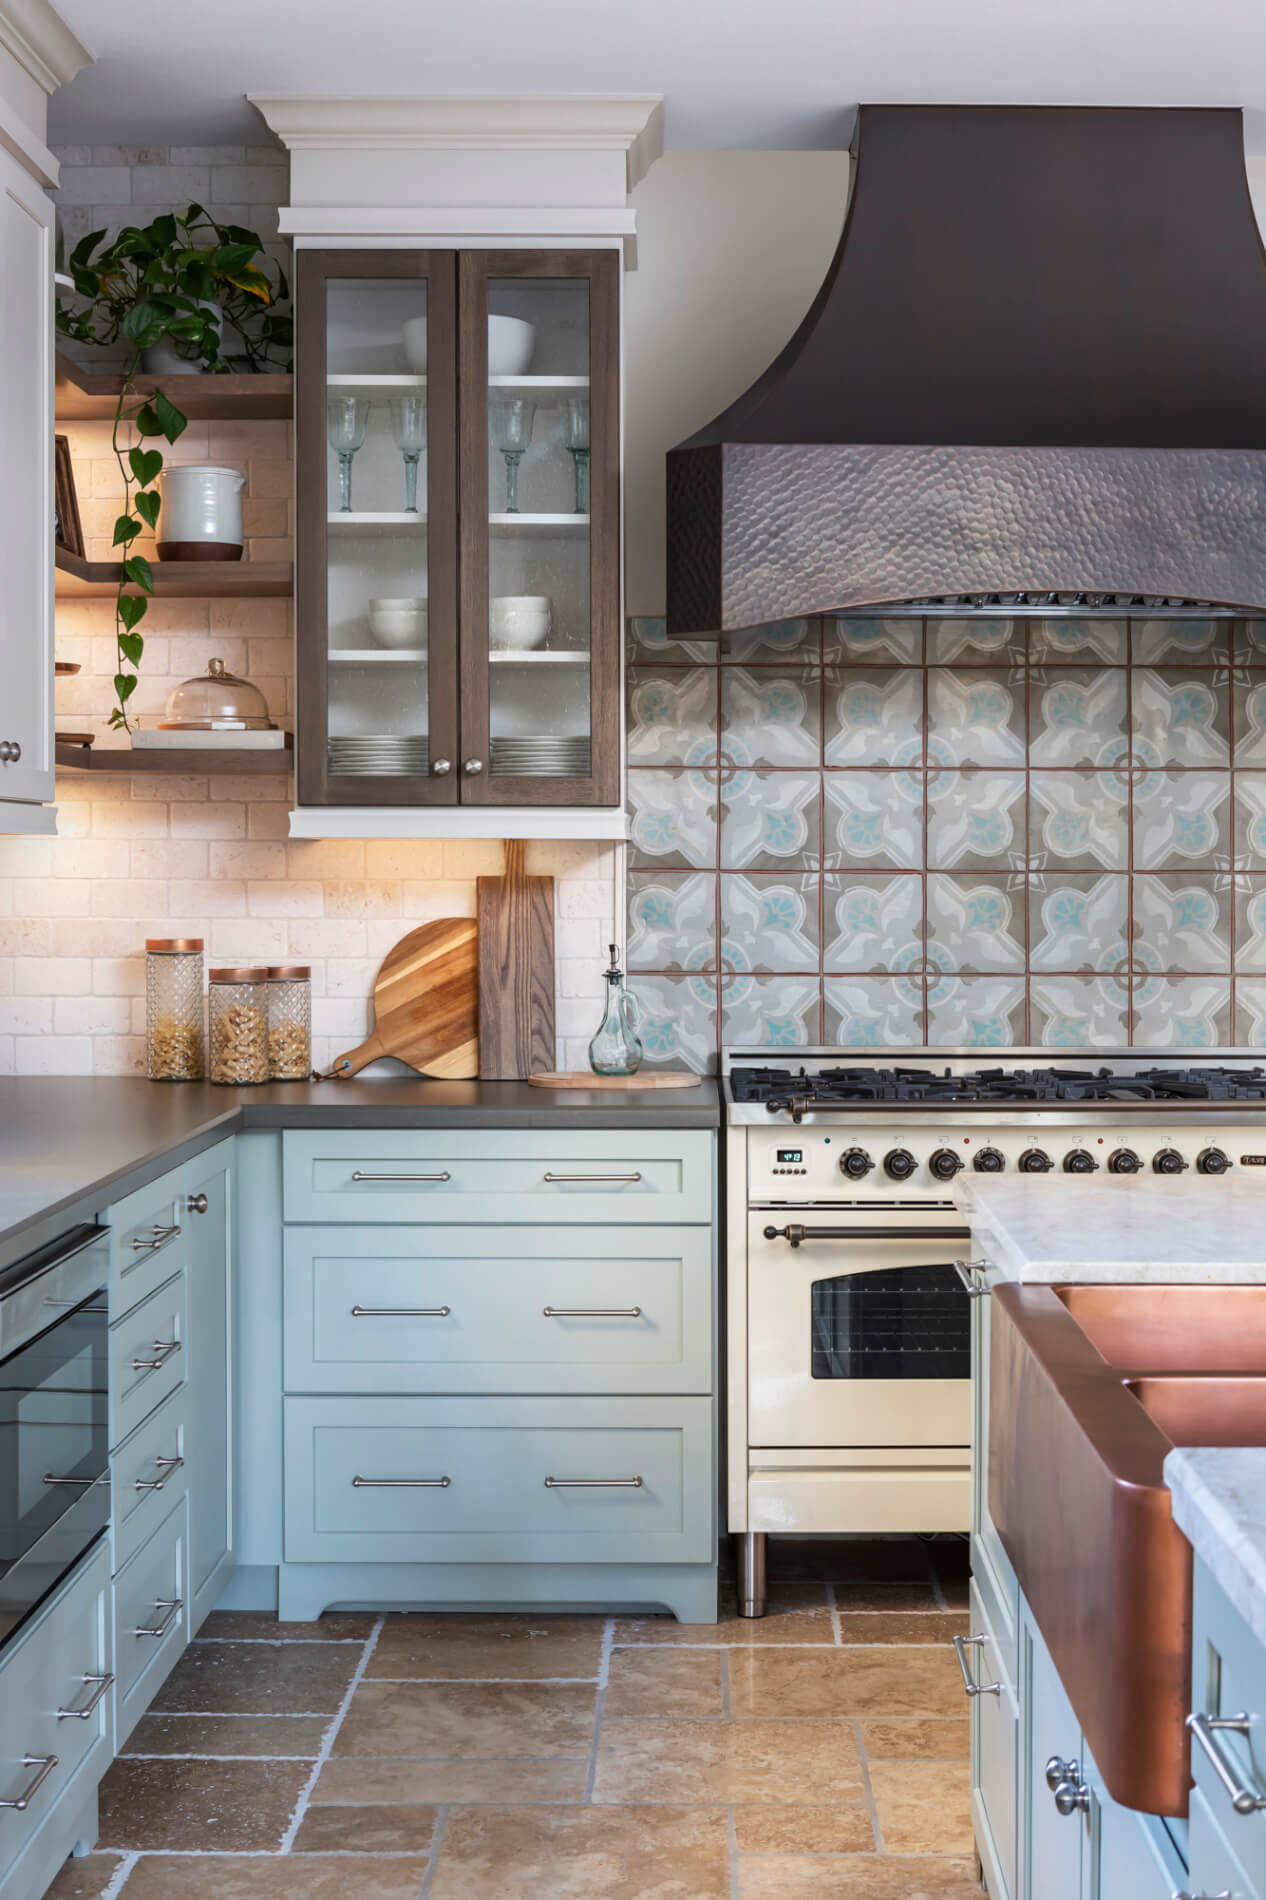 Grout-and-Soapstone-countertops-in-Farmhouse-Renovation